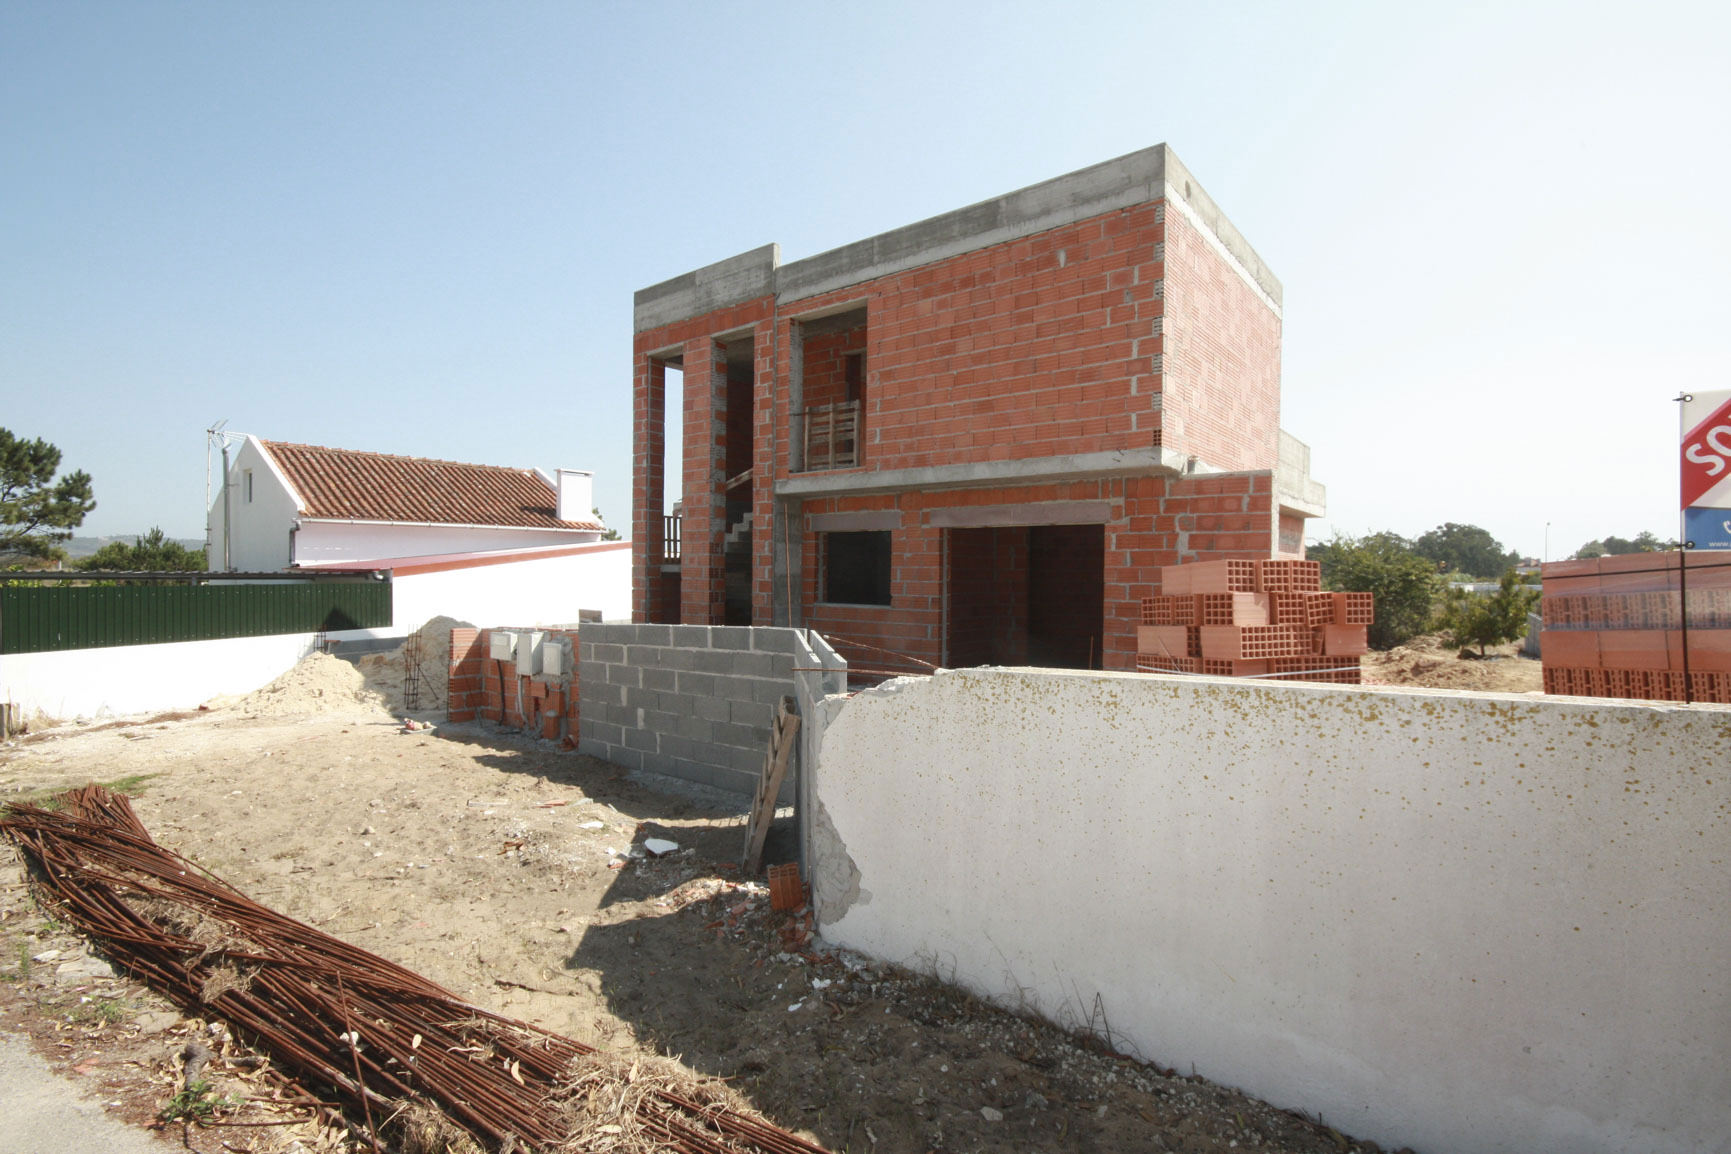 11-portugal-realty-silver-coast-property-for-sale-presprop-contsruction-new-build